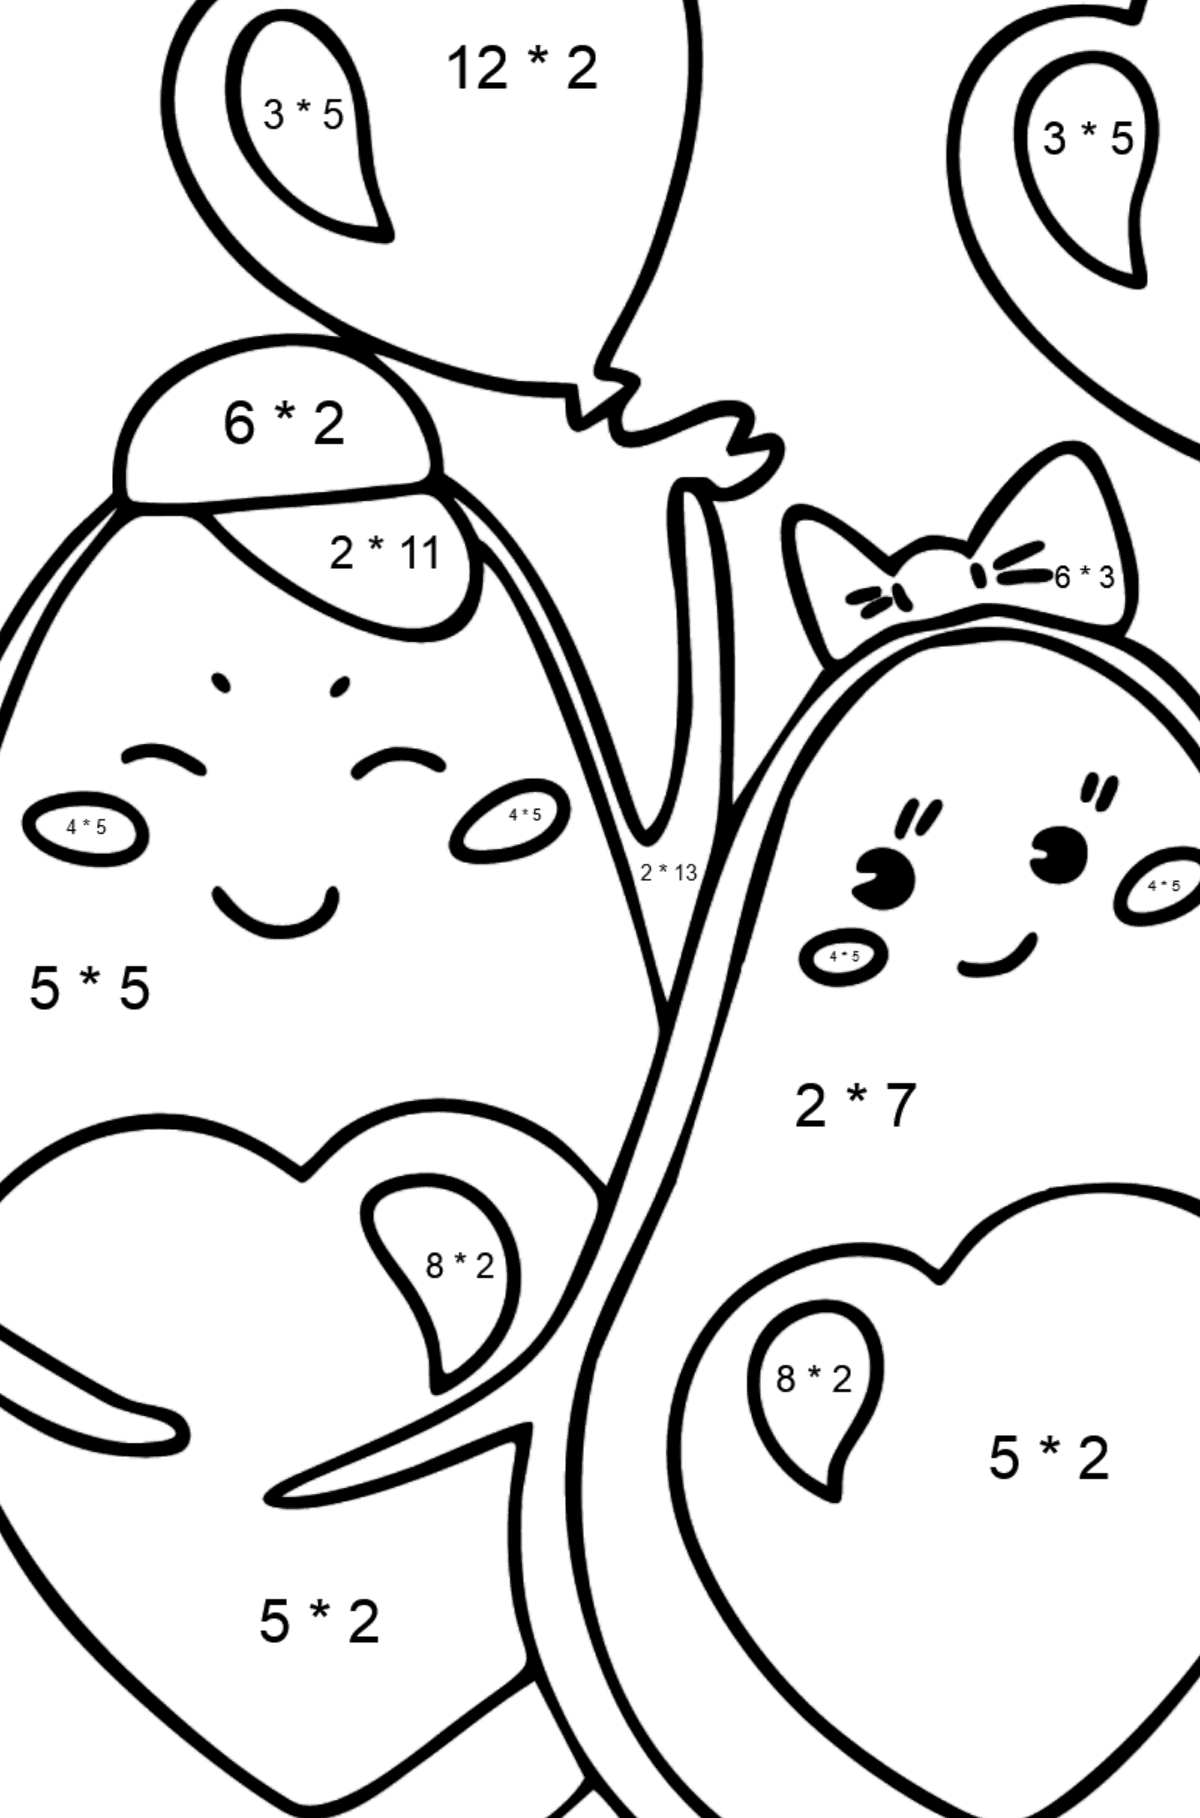 Avocado in Love coloring page - Math Coloring - Multiplication for Kids